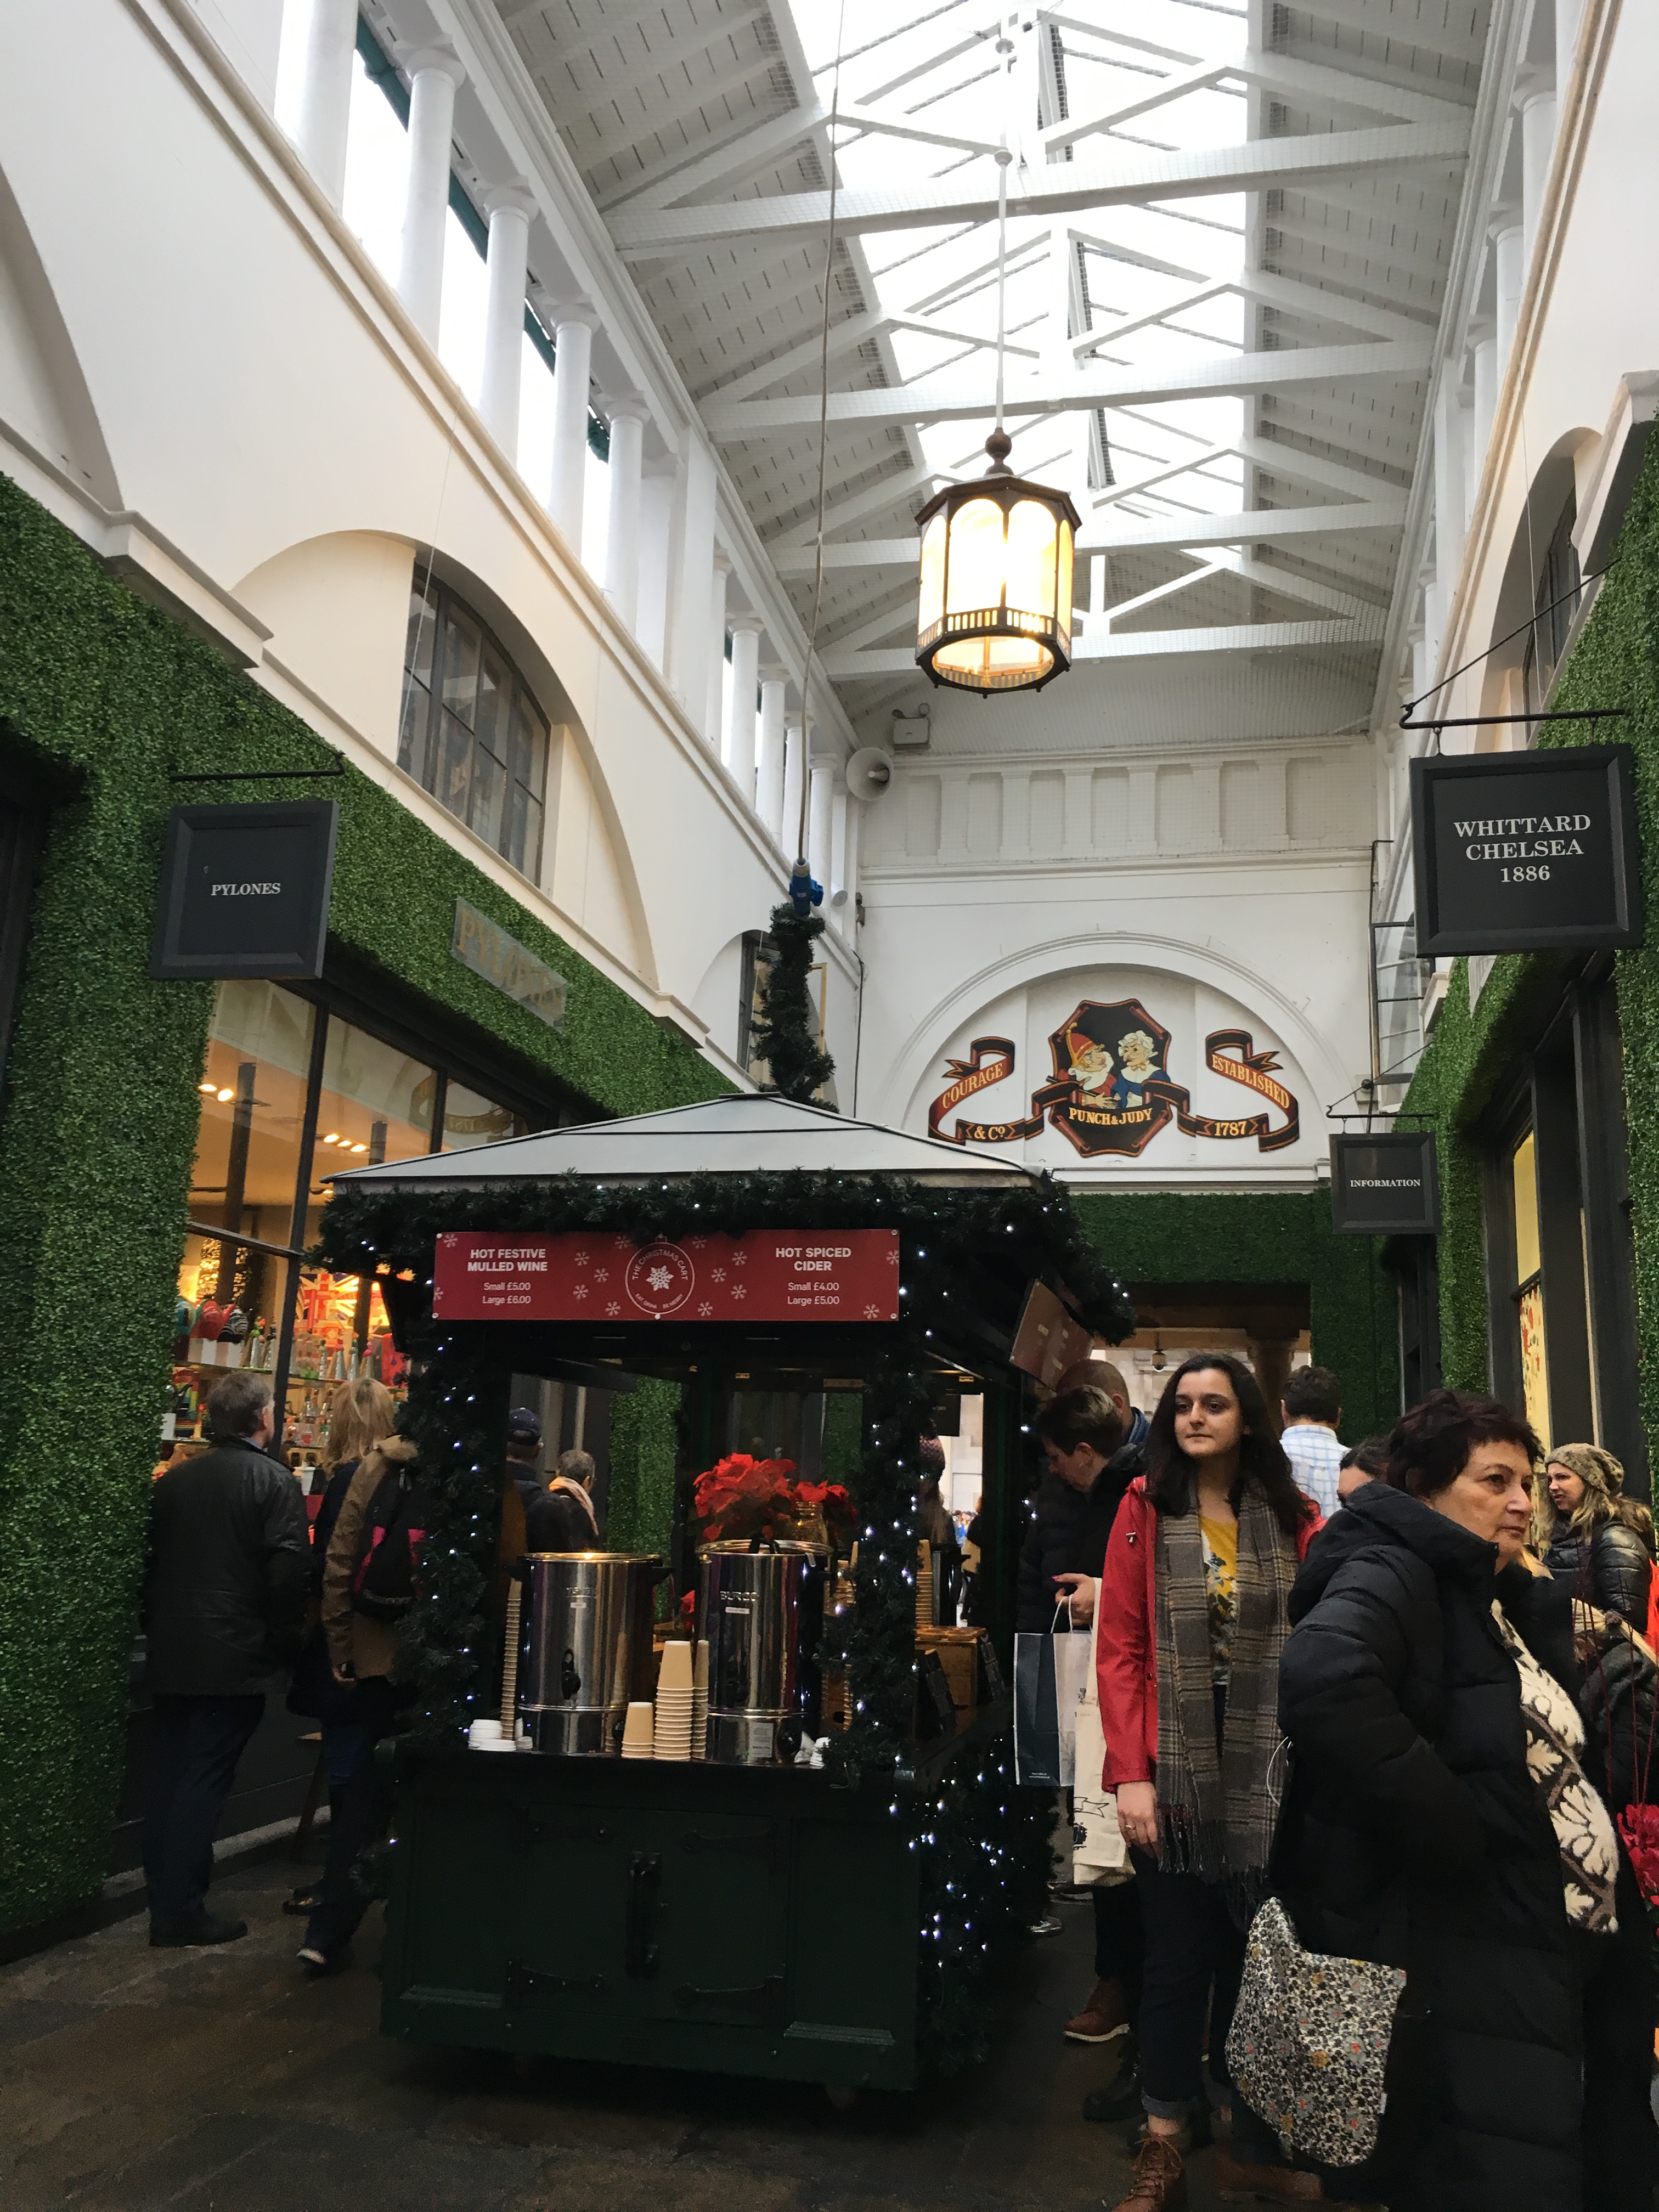 The inner court at Covent boasts a sweet cider stall